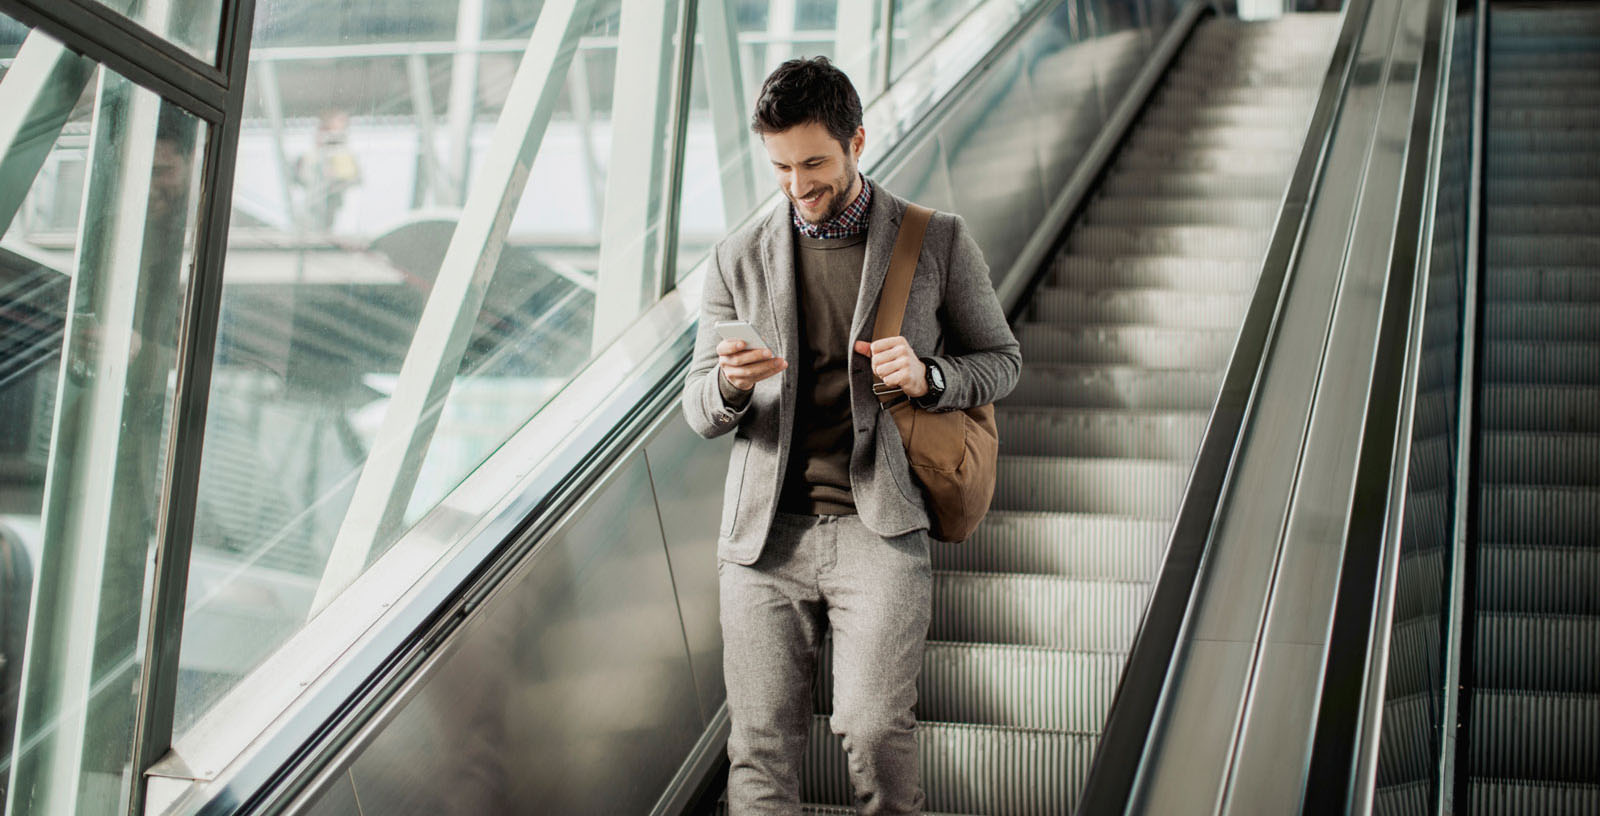 Businessman checking his phone while walking down an escalator